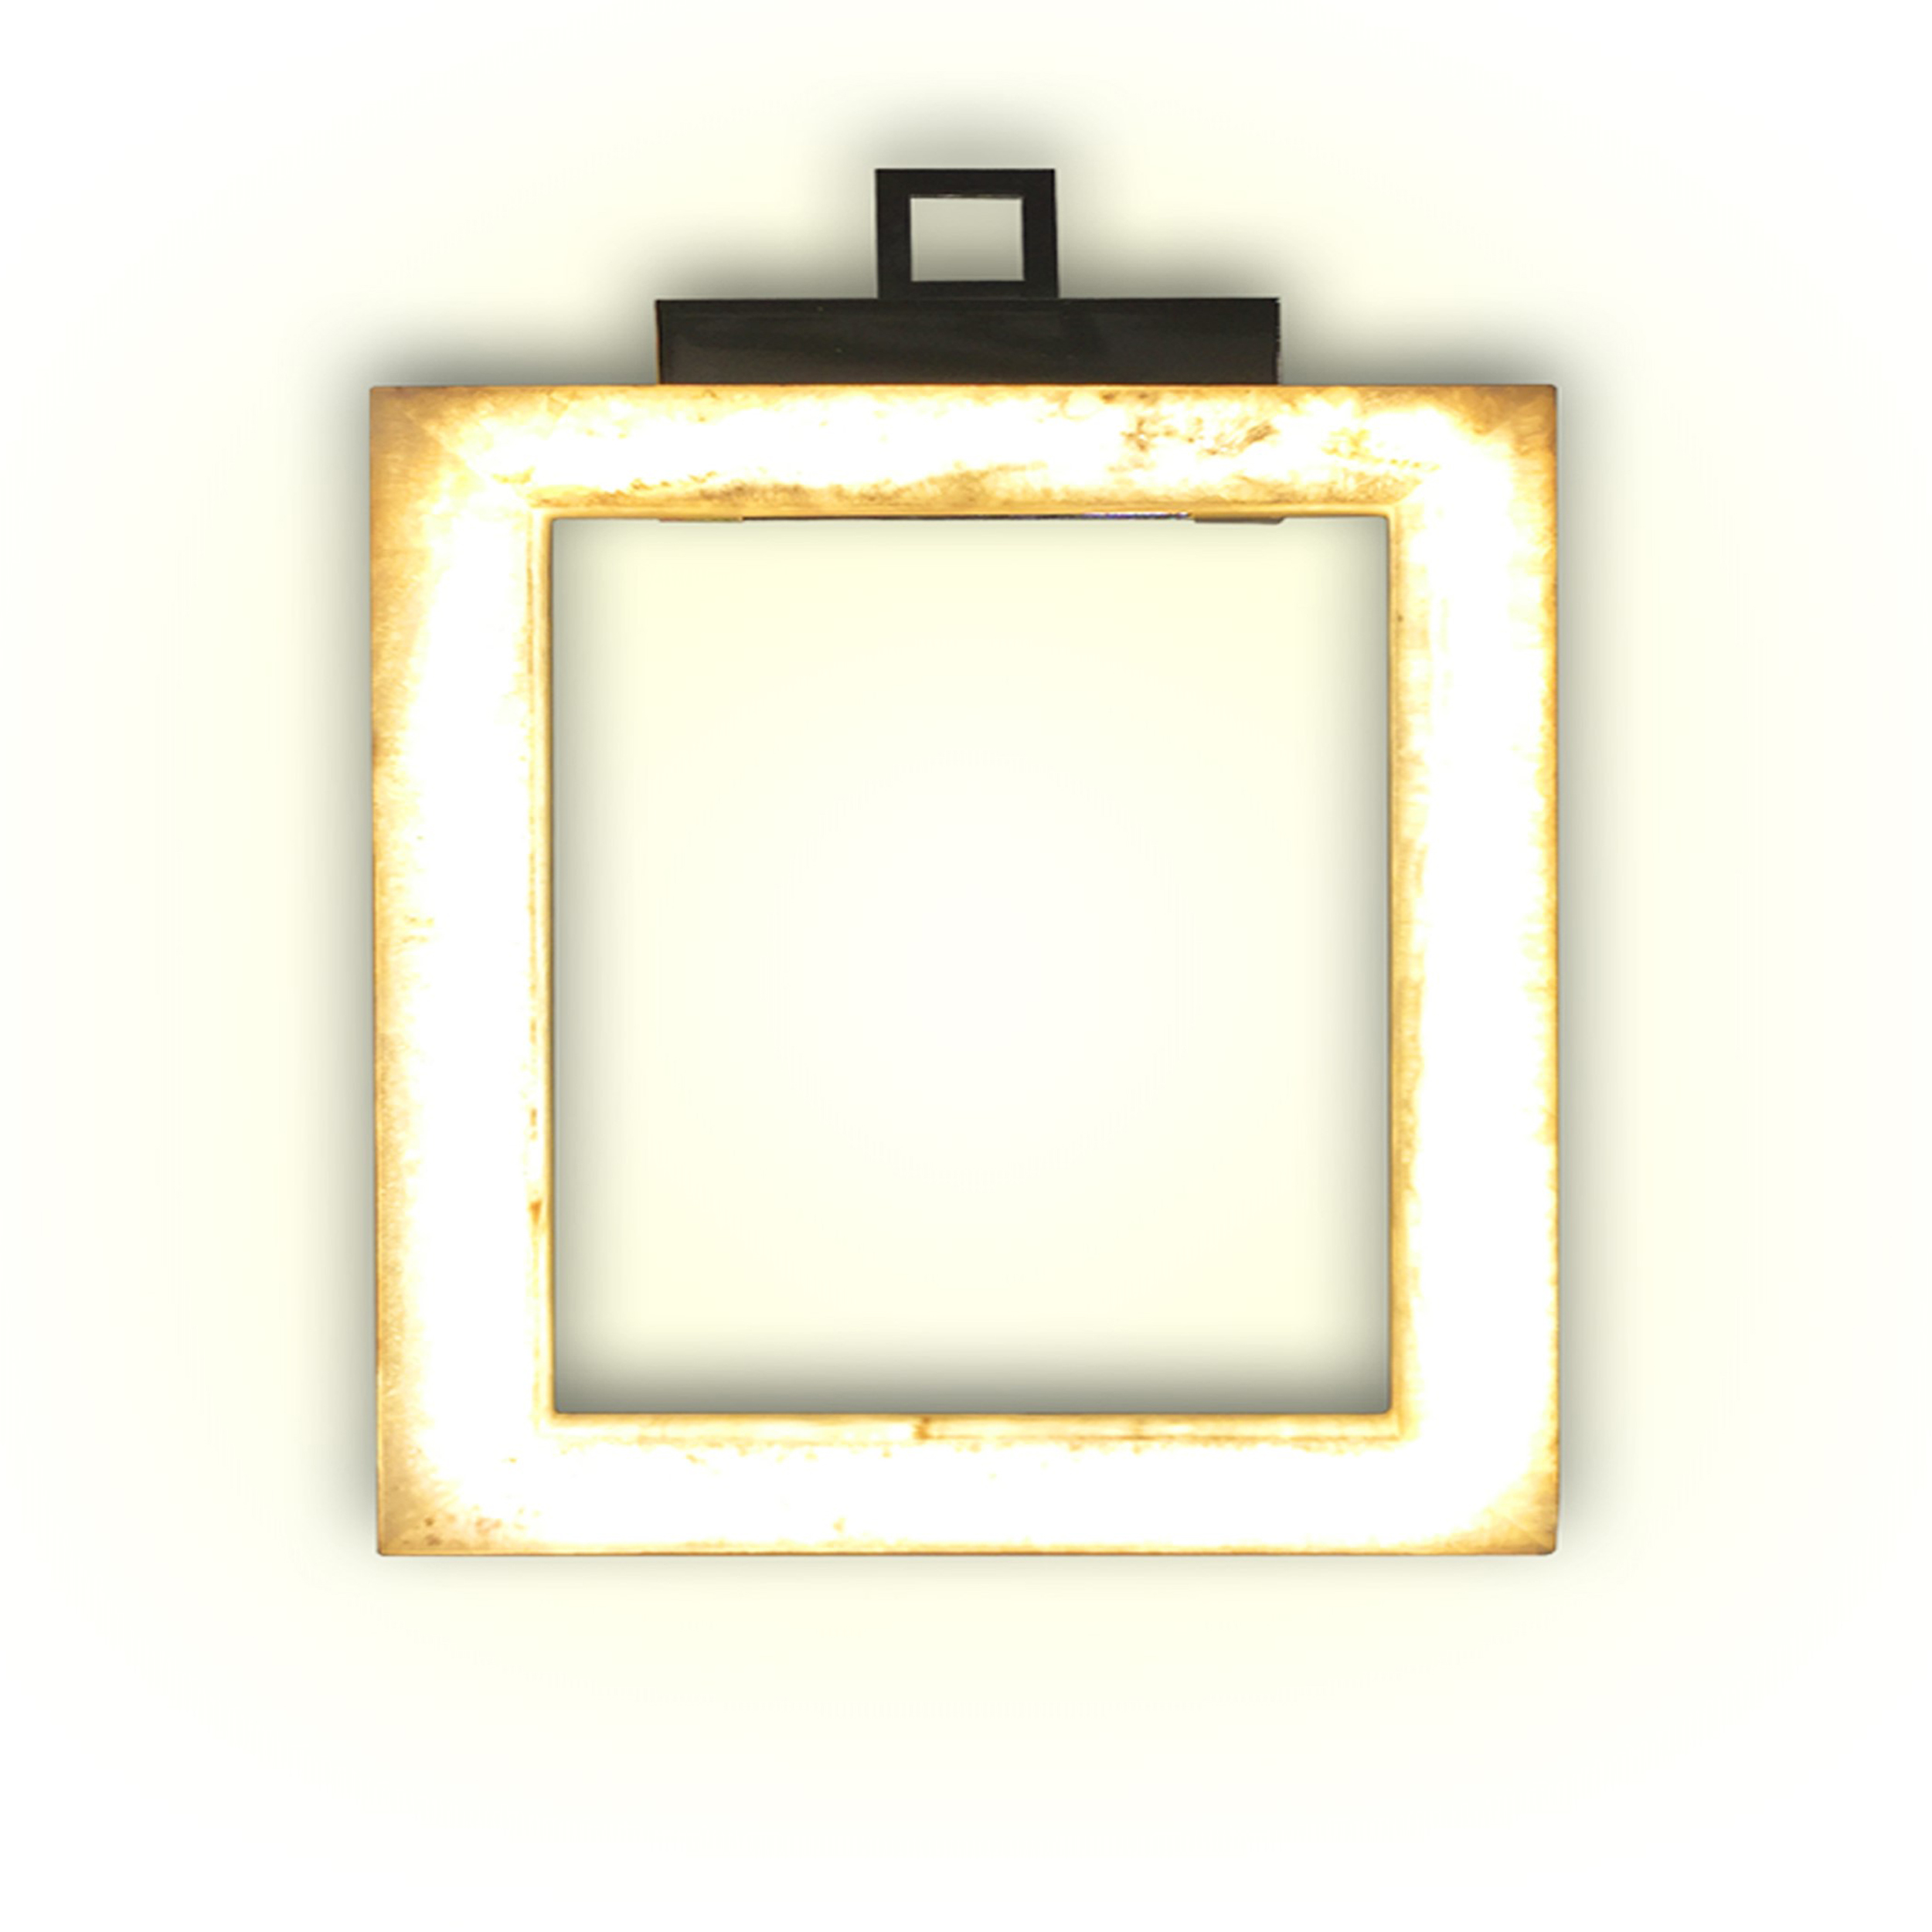 Contardi Uffizi Ap 1 Wall Light Marble